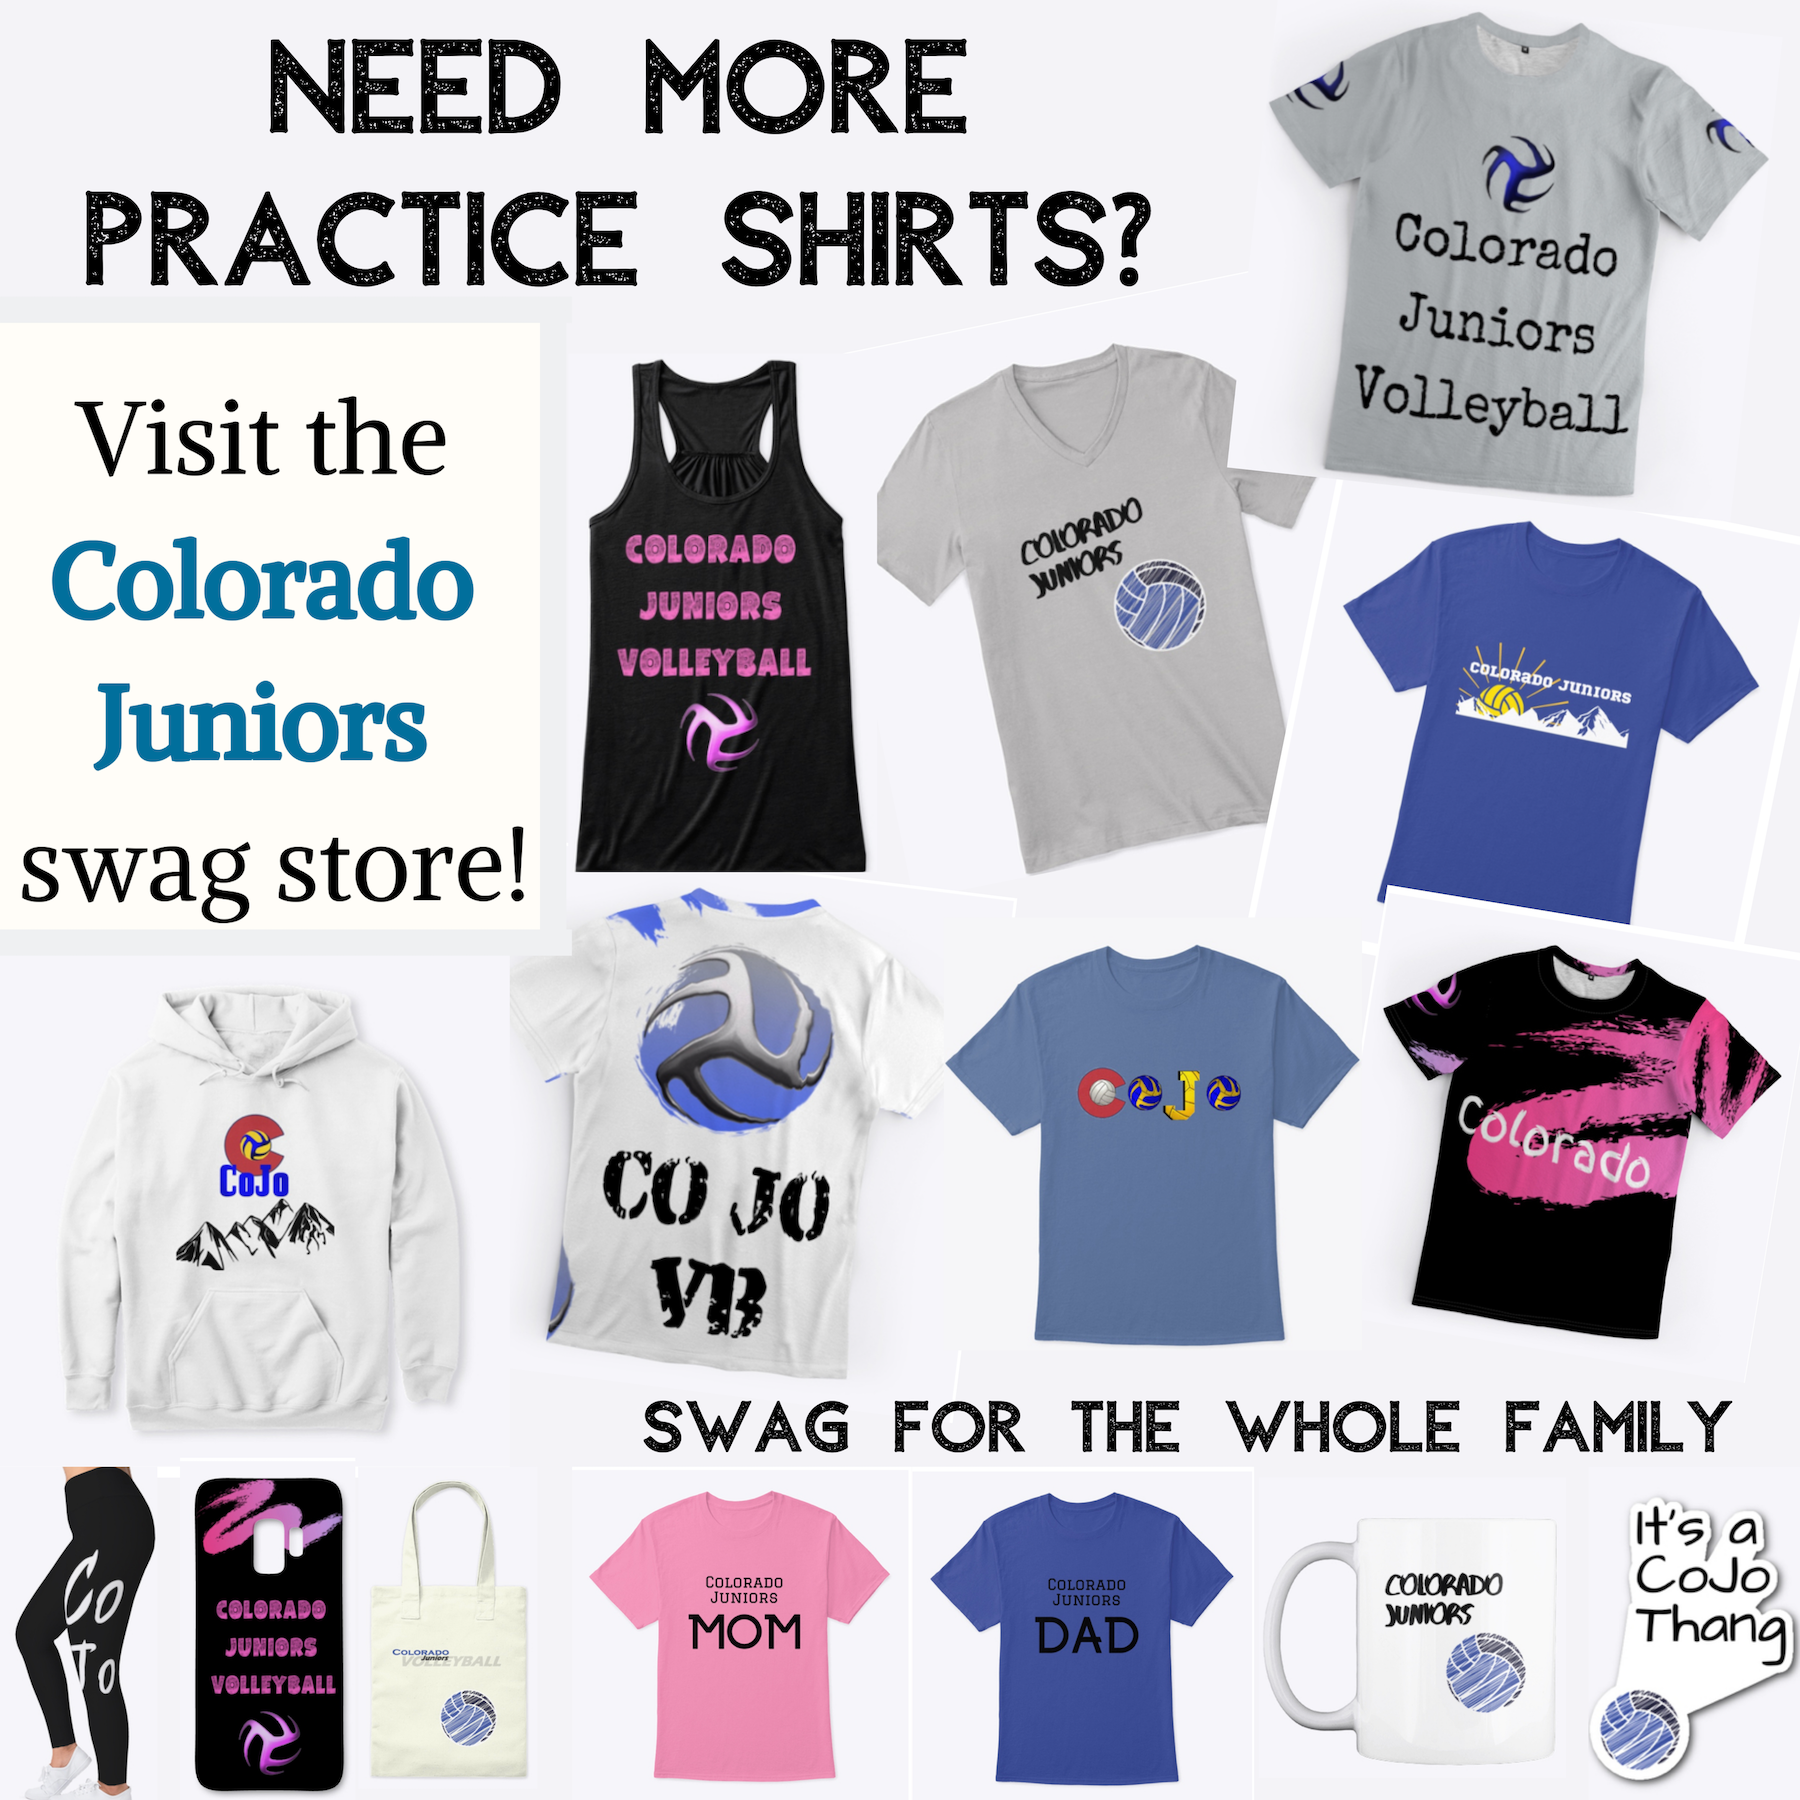 Need more practice shirts?